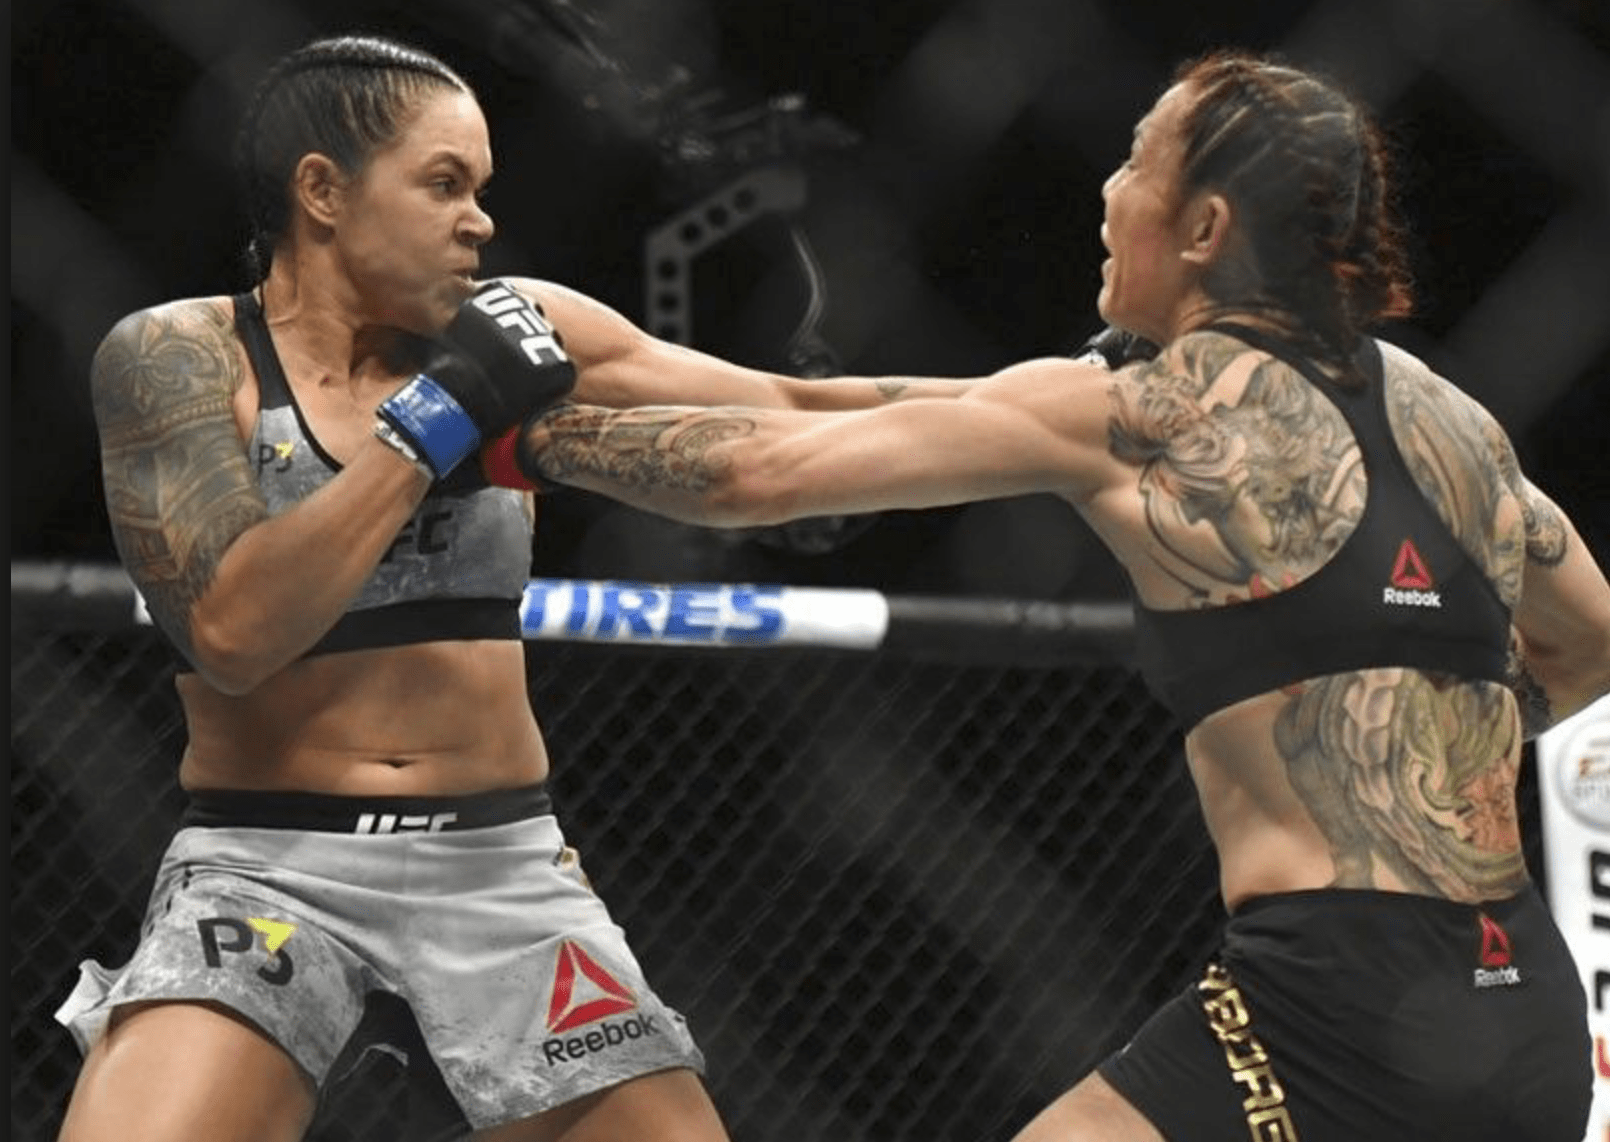 Four Fighters Gained More Than 10% Of Their Body Weight From Weigh-ins To Fight Night At UFC 232